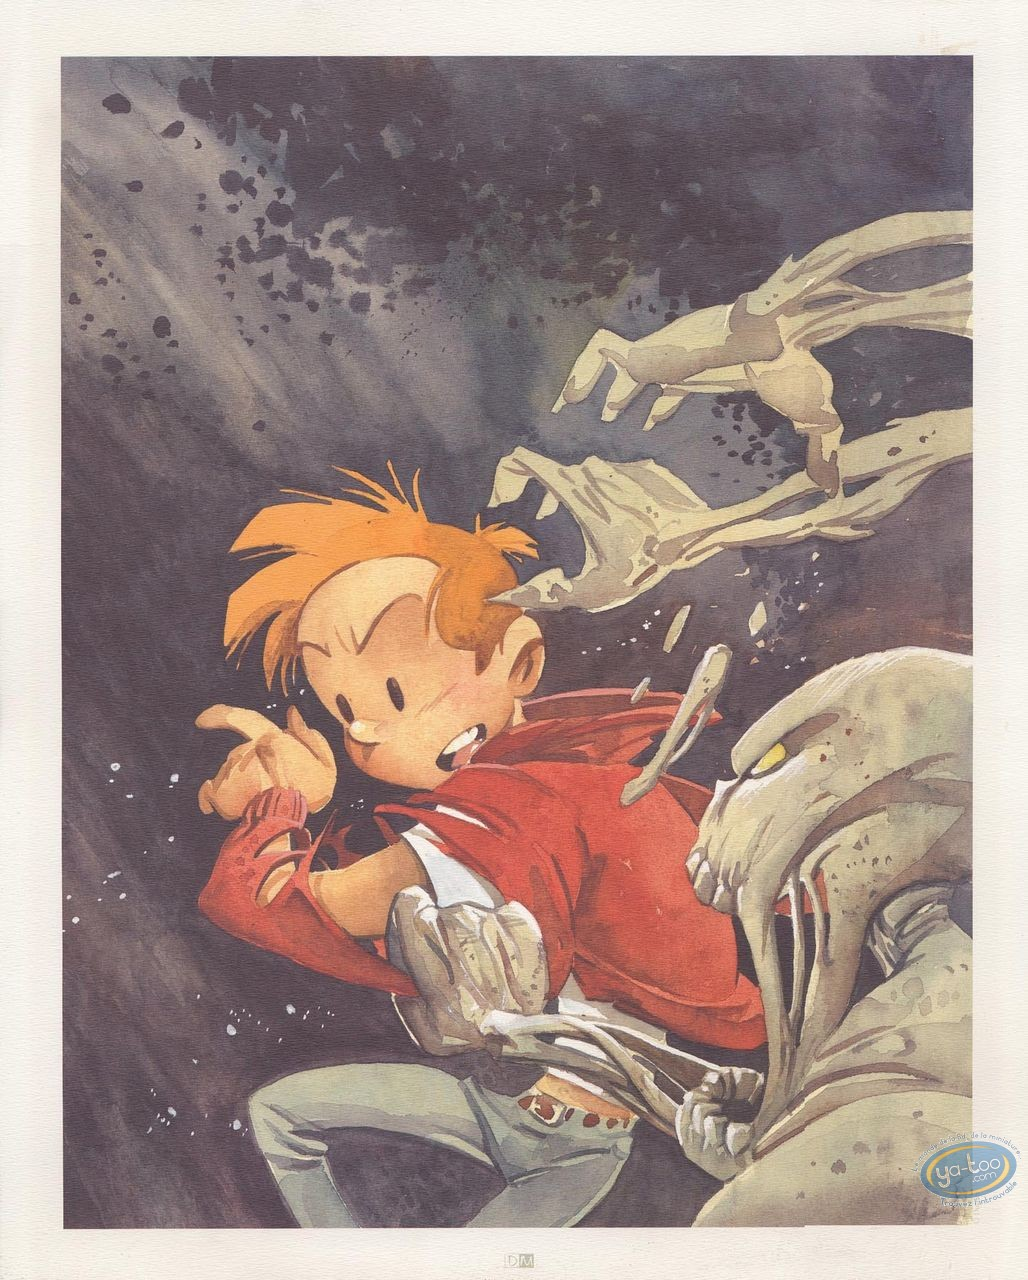 Offset Print, Spirou and Fantasio : The ManwWho didn't want to Die (signed)